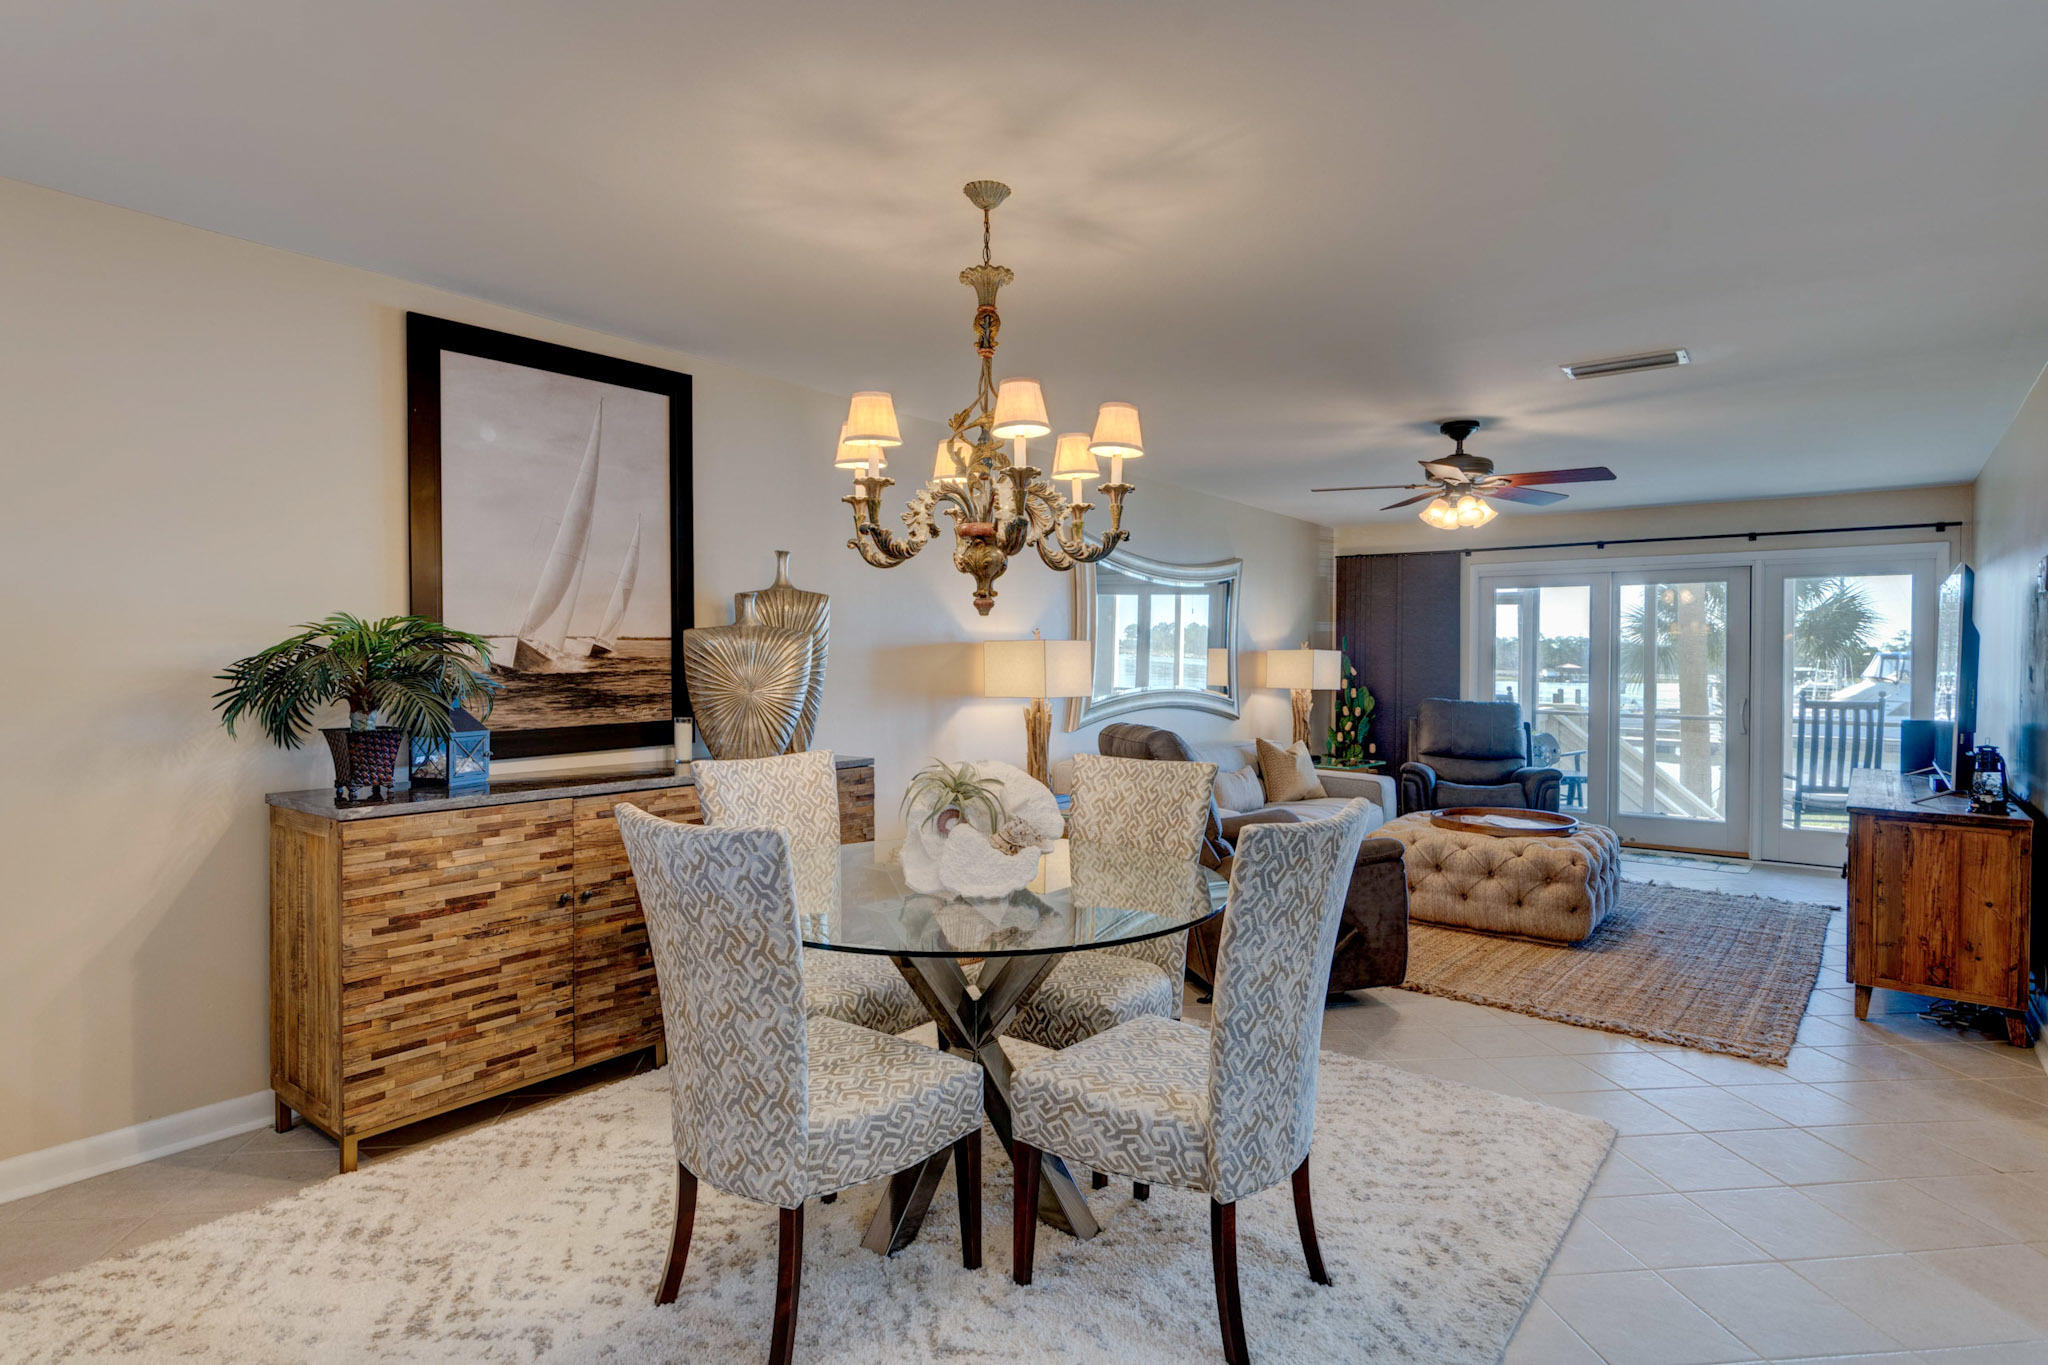 Mariners Cay Homes For Sale - 76 Mariners Cay, Folly Beach, SC - 22